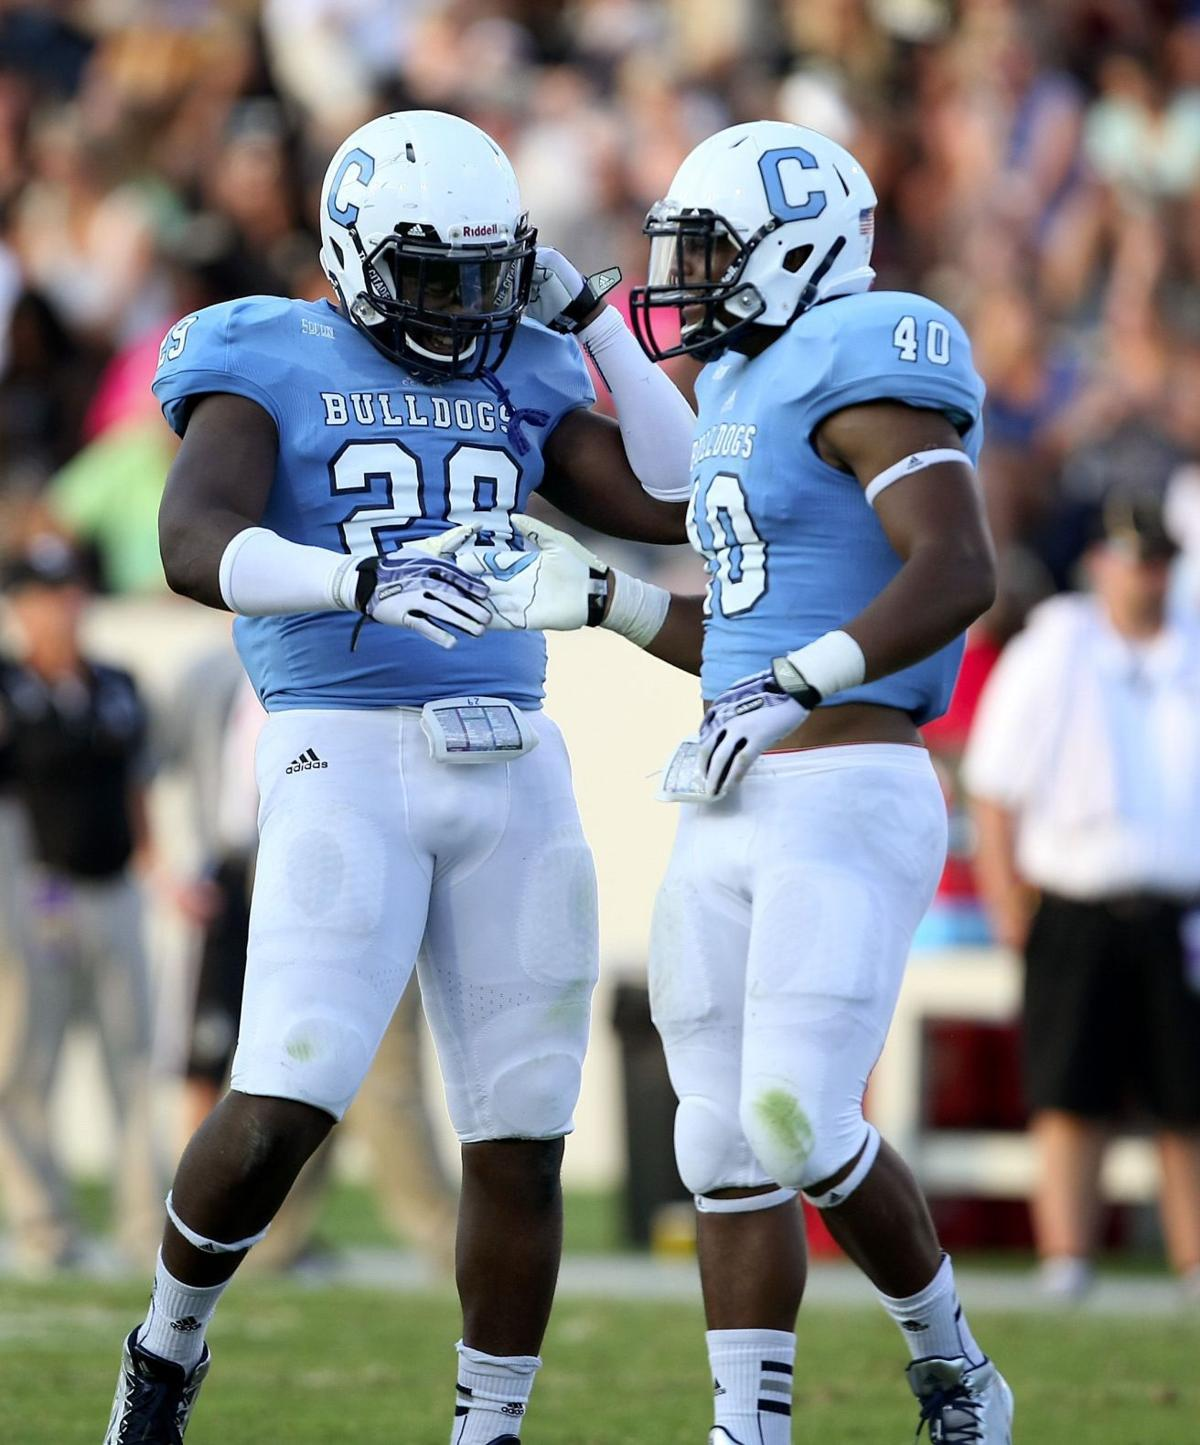 Citadel position report: Bulldogs' linebackers 'heart of the team'